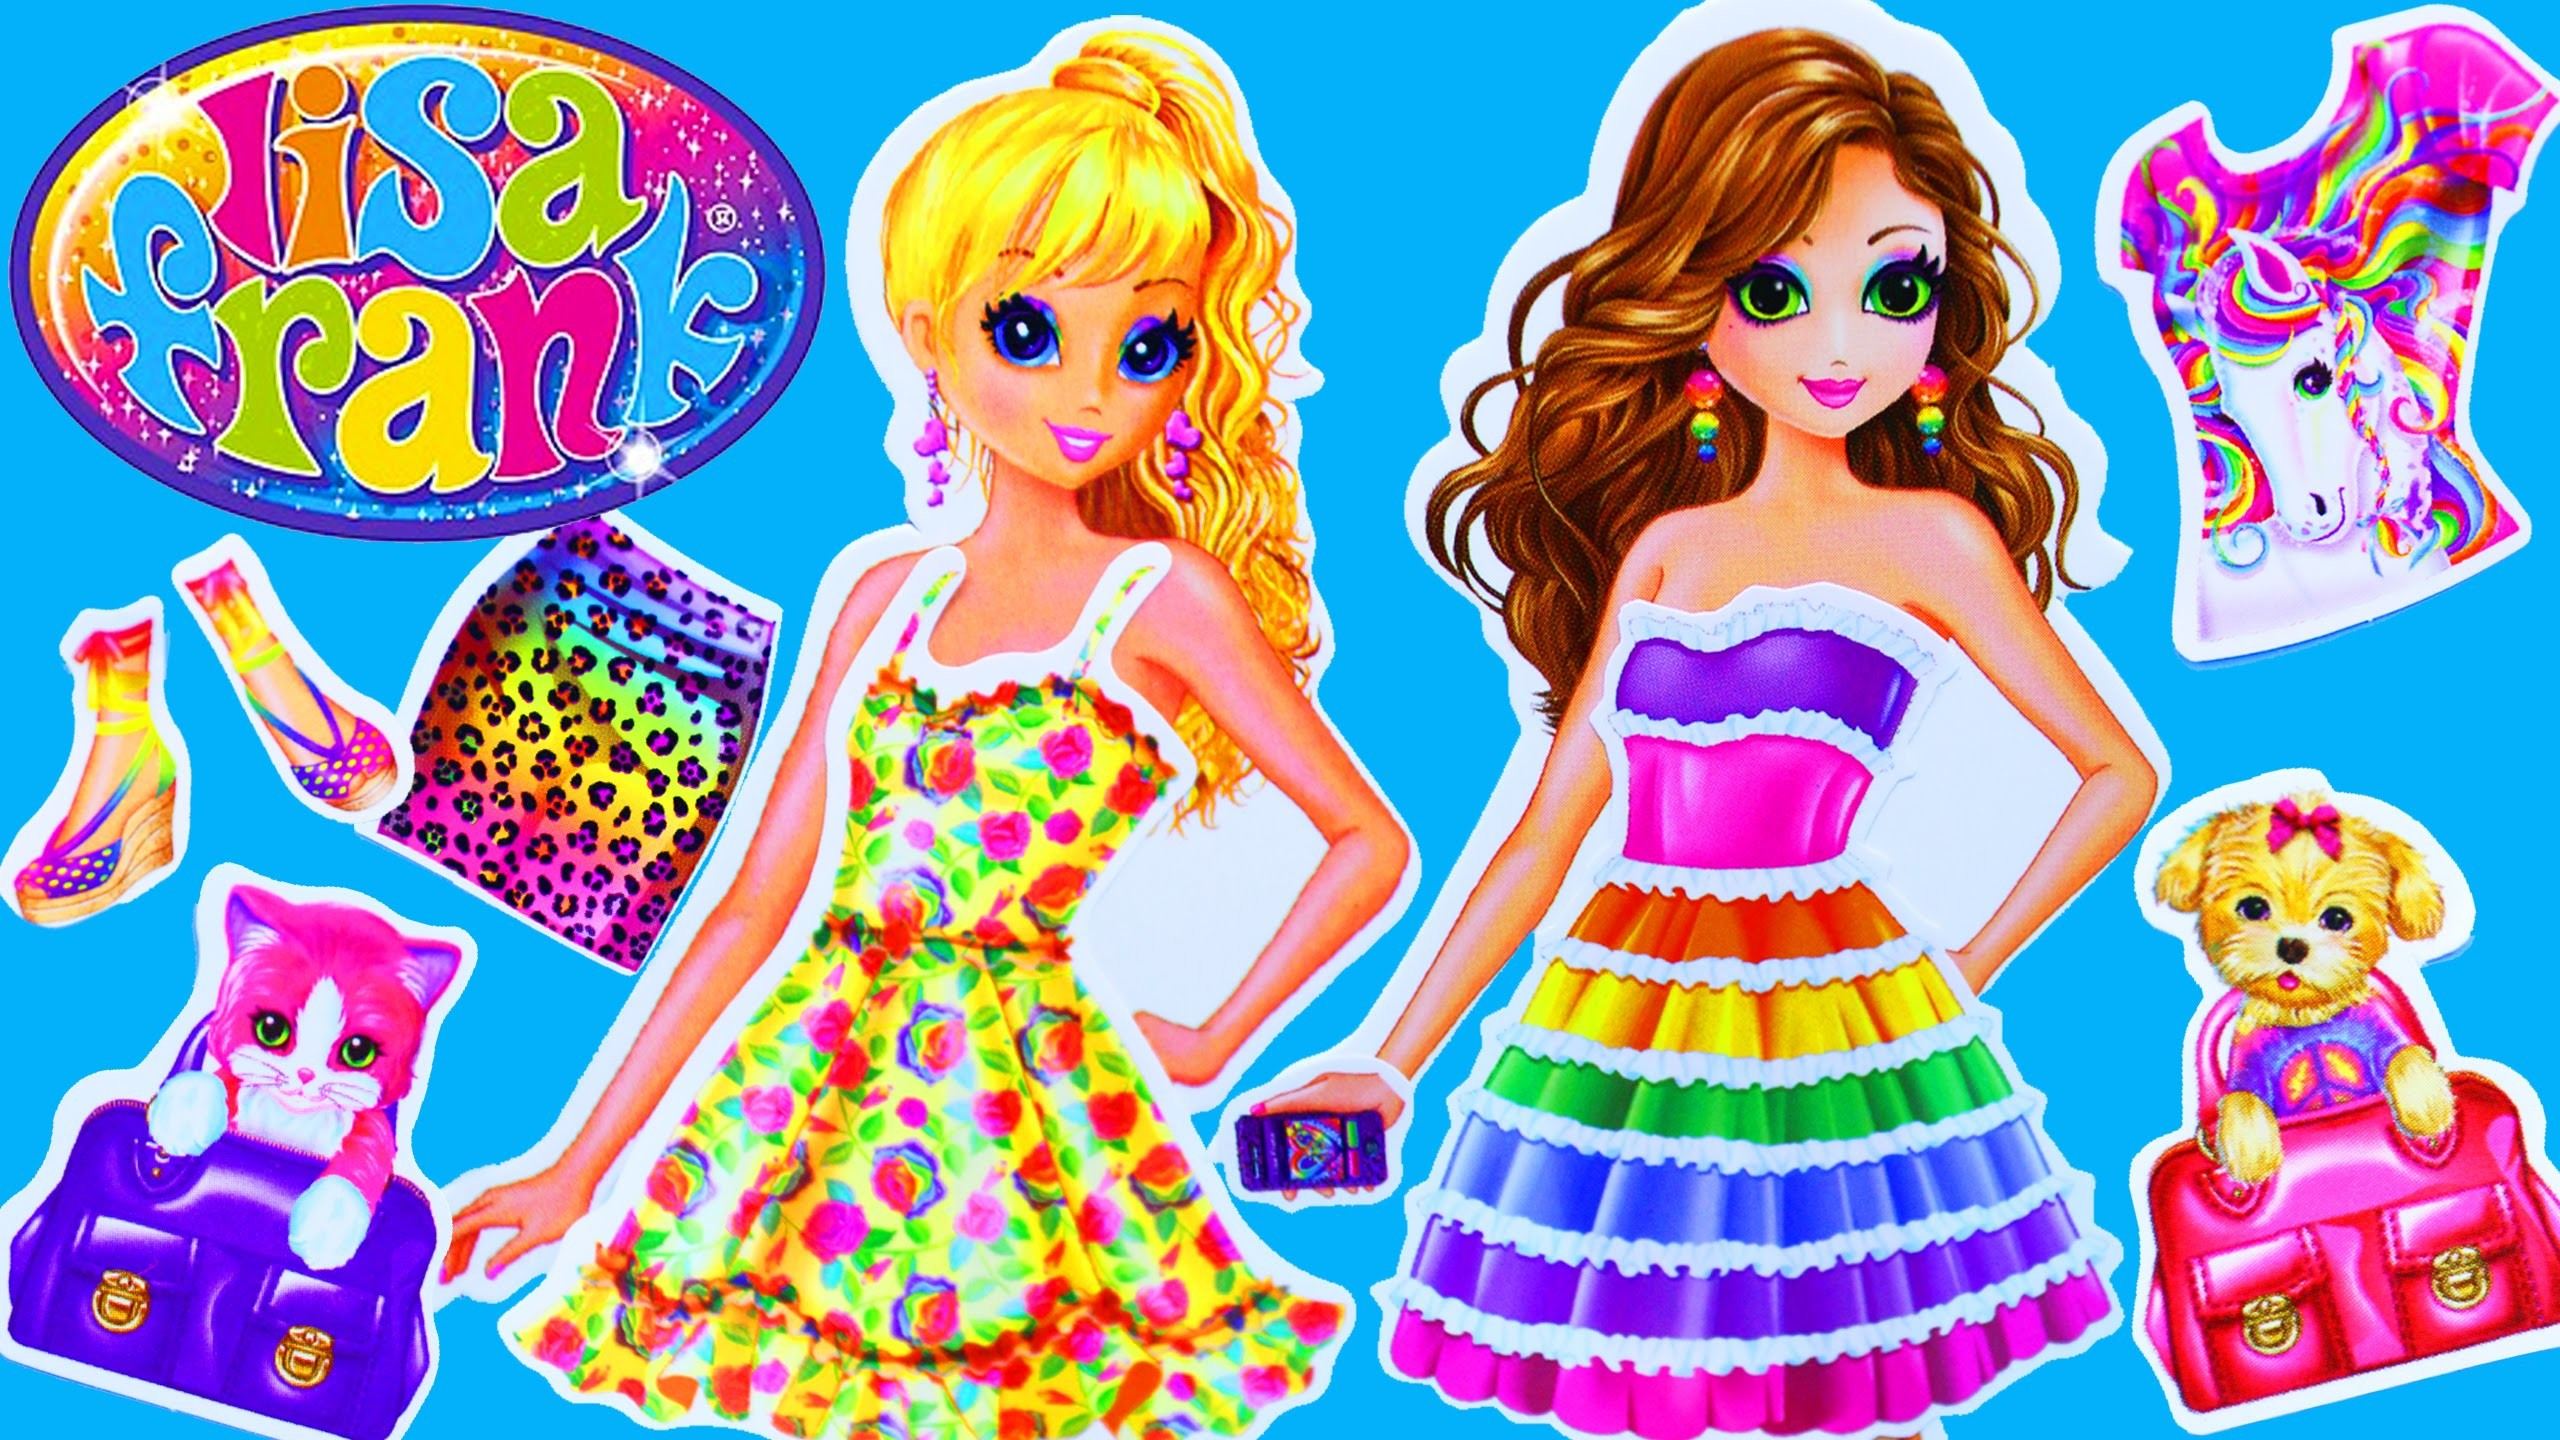 LISA FRANK Toys Paper Dolls Dress-Up Stickers Contest With Dresses, Shoes,  Puppy & Kitten – YouTube